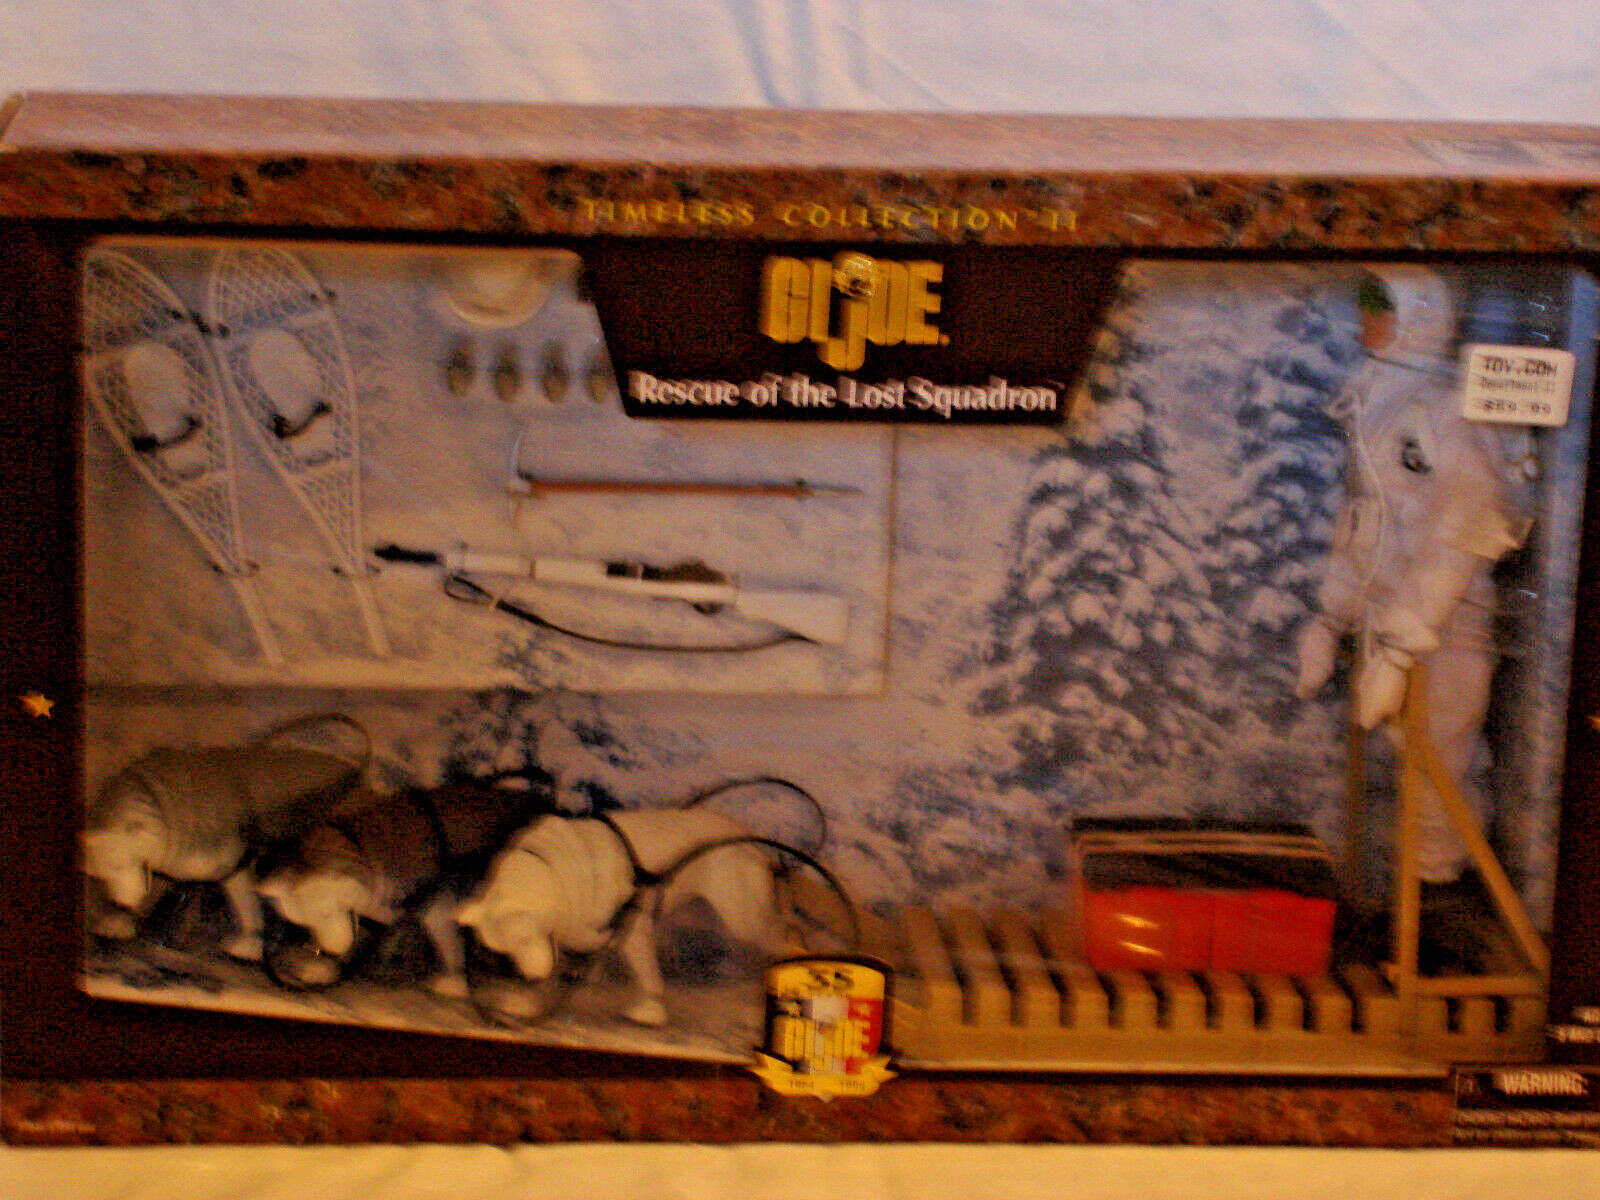 GI Joe Rescue Of The Lost Squadron Timeless Collection II NIB